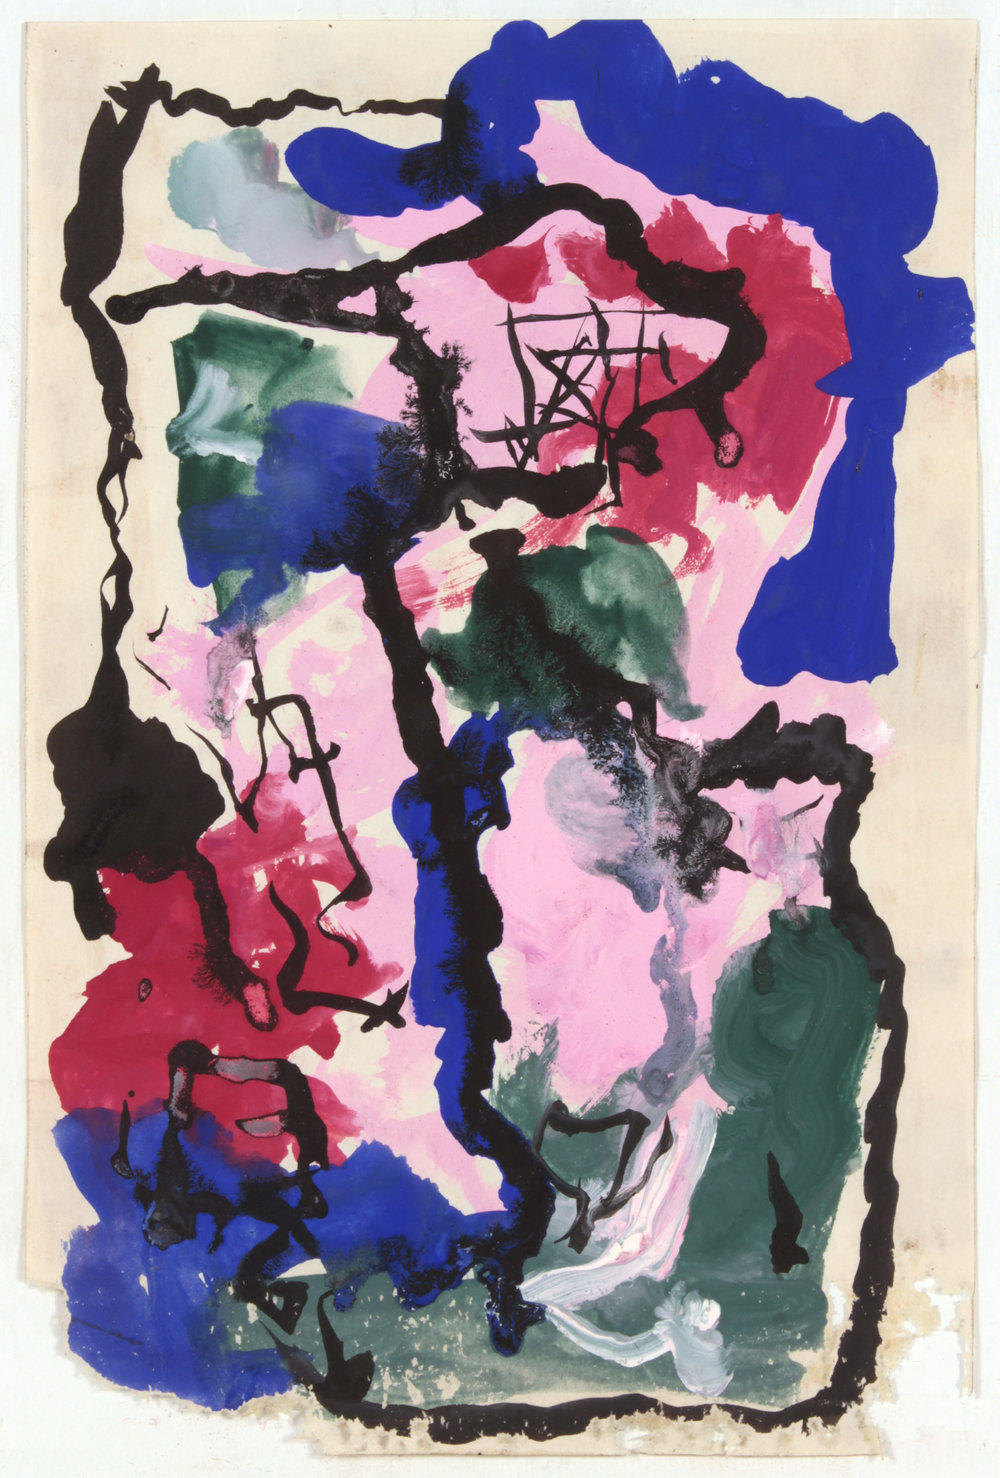 6. 1946-47 c, NT (Class Exercise 4_ Blue, Pink, Green, Red and Black), Casein and Ink on Paper, 9.375x6.25, PPS 1463.JPG